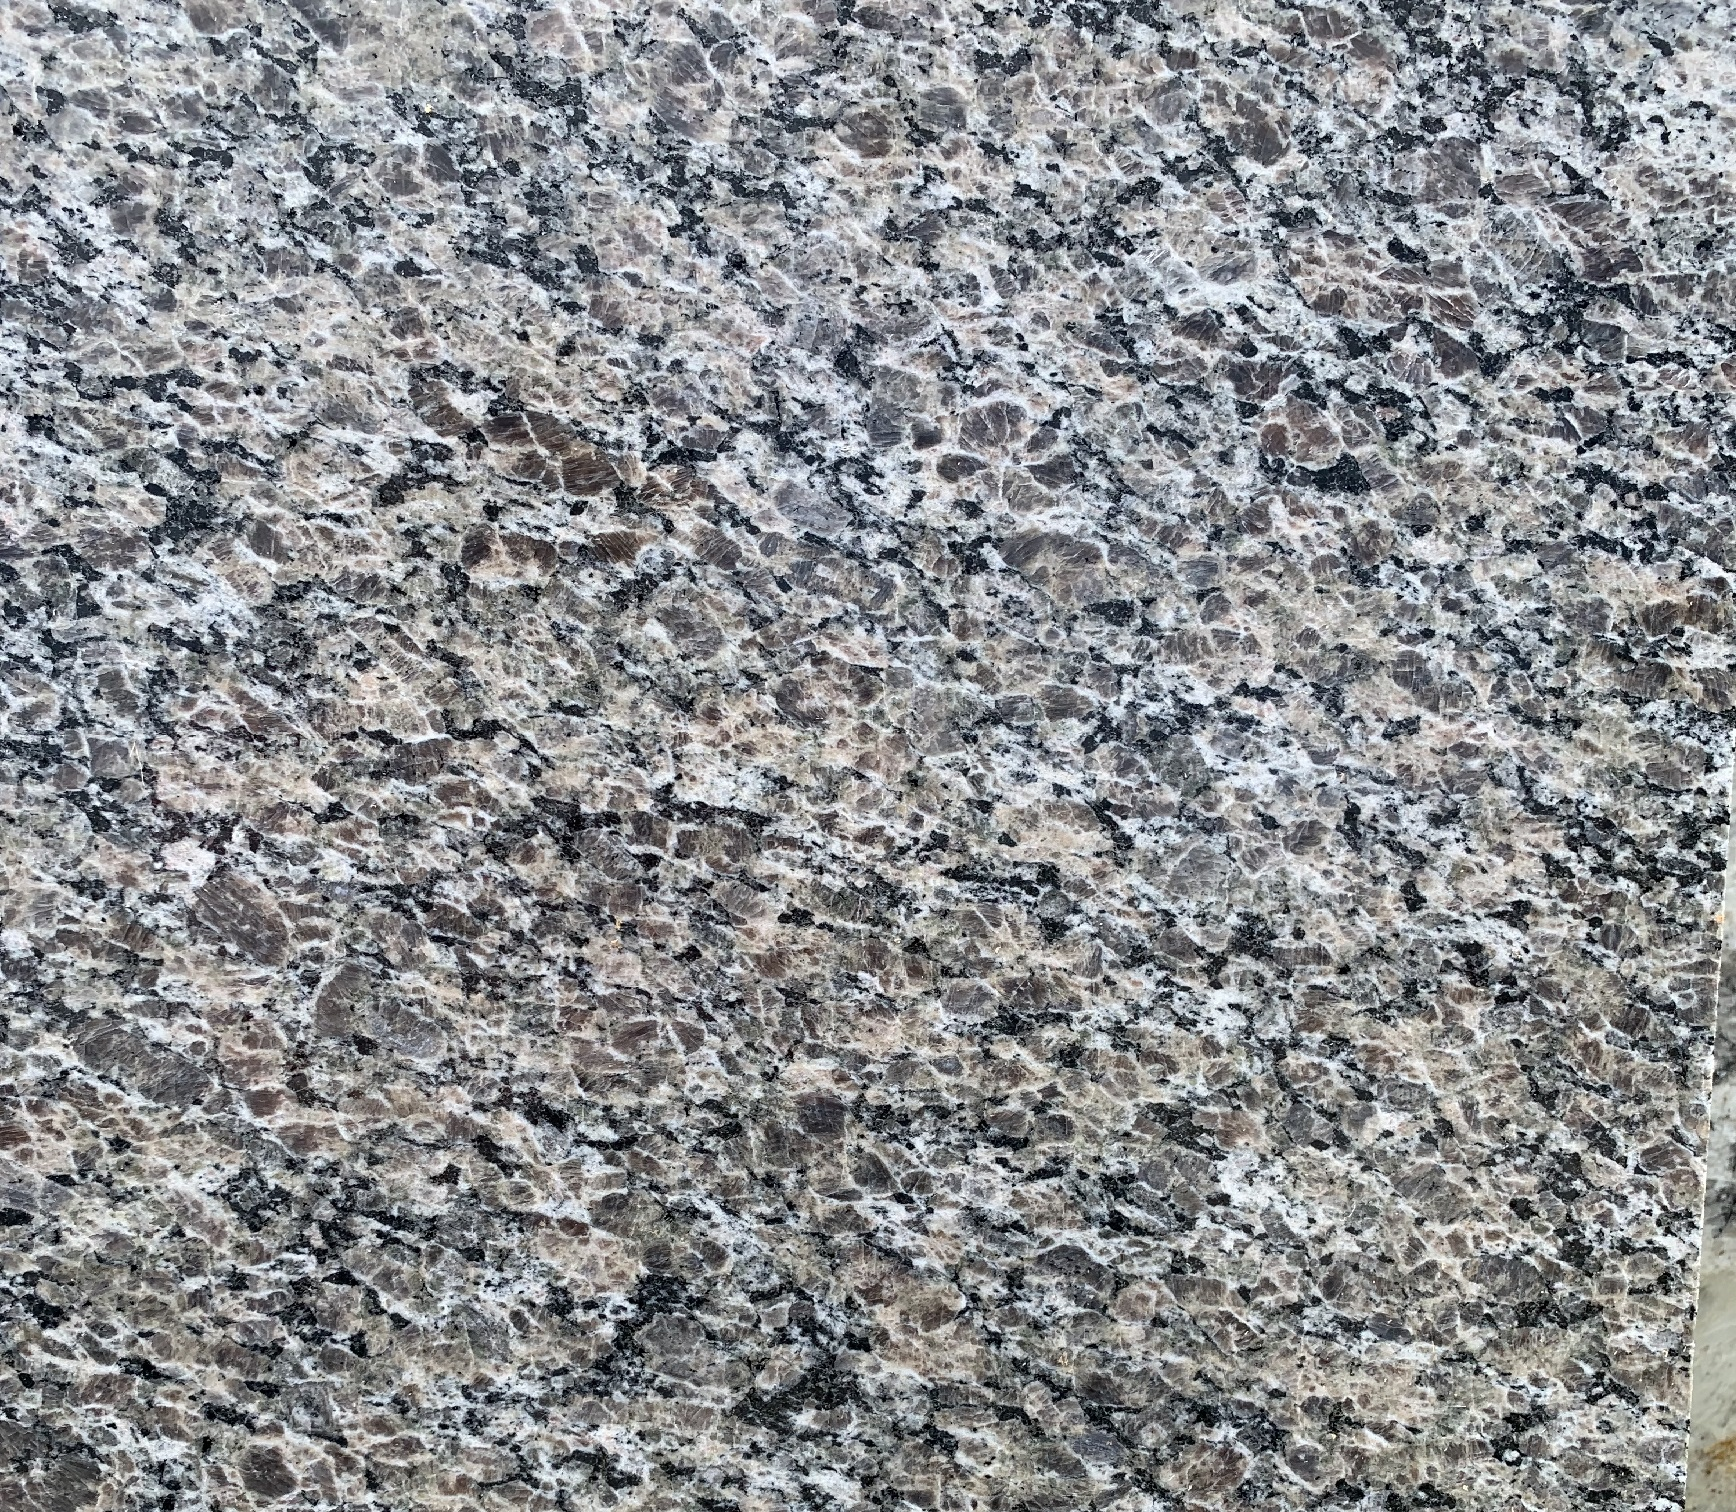 2CM Caledonia_Basic Granite_Polished